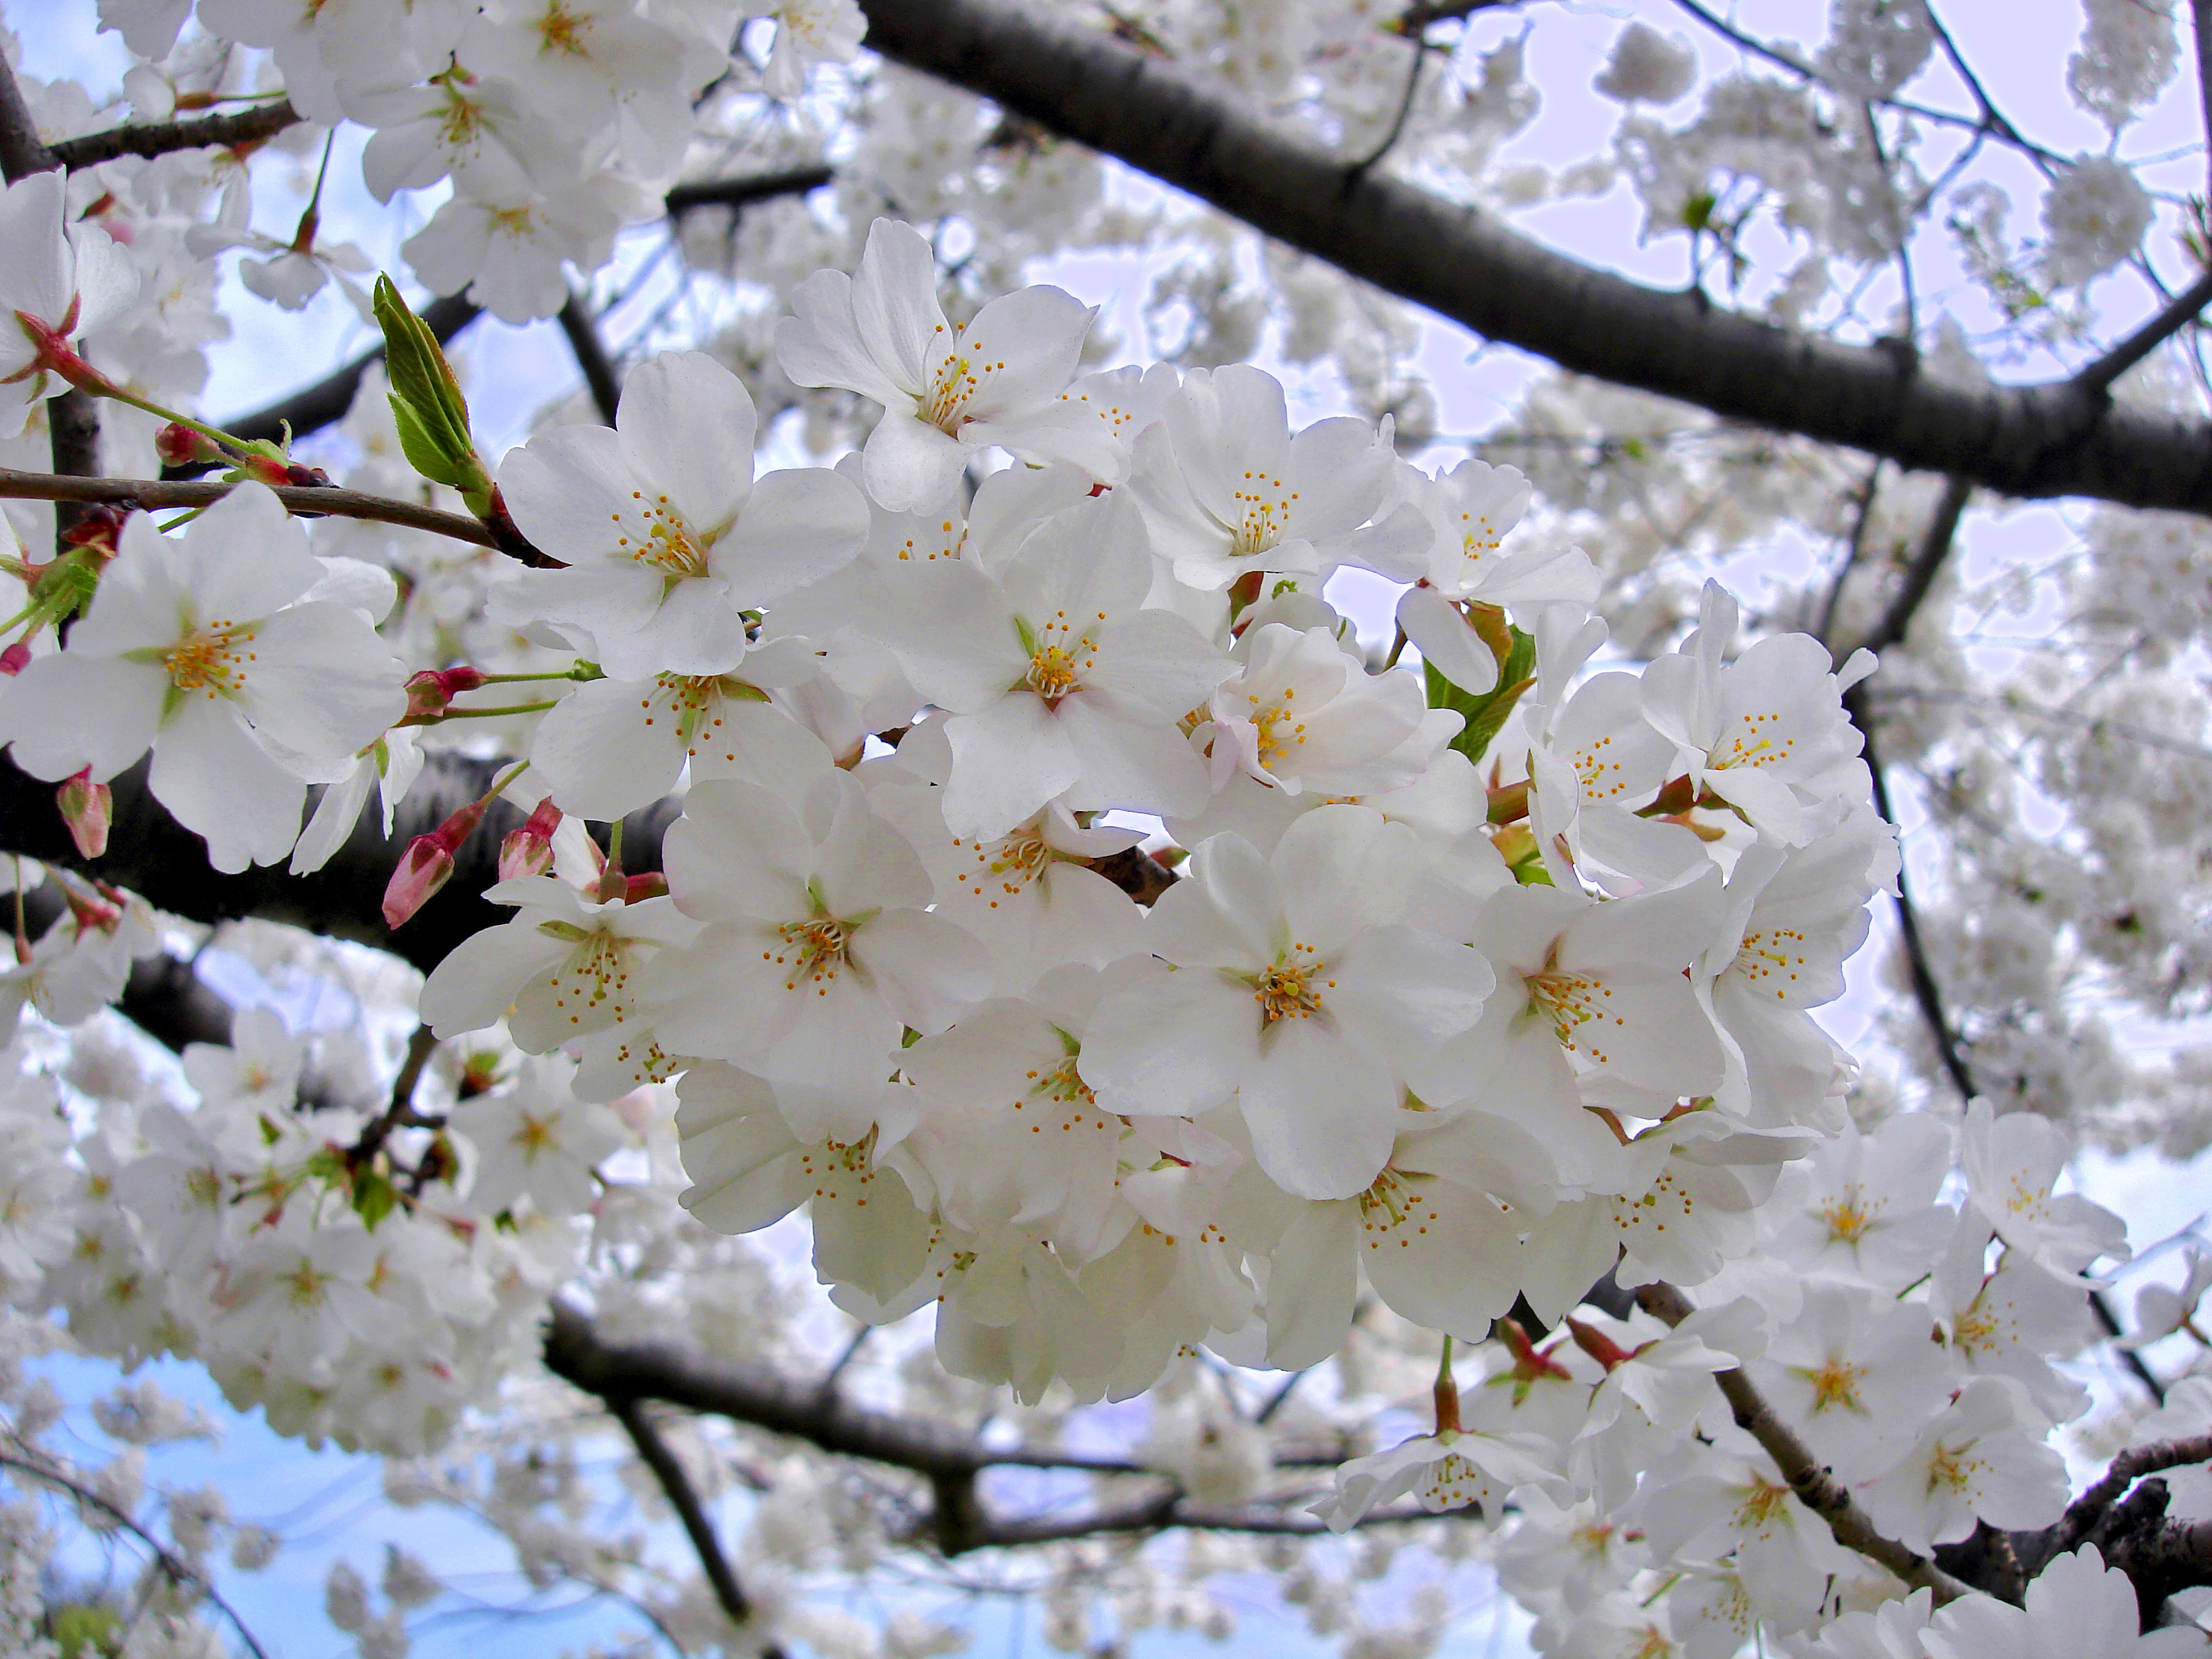 The 41st Annual Cherry Blossom Festival